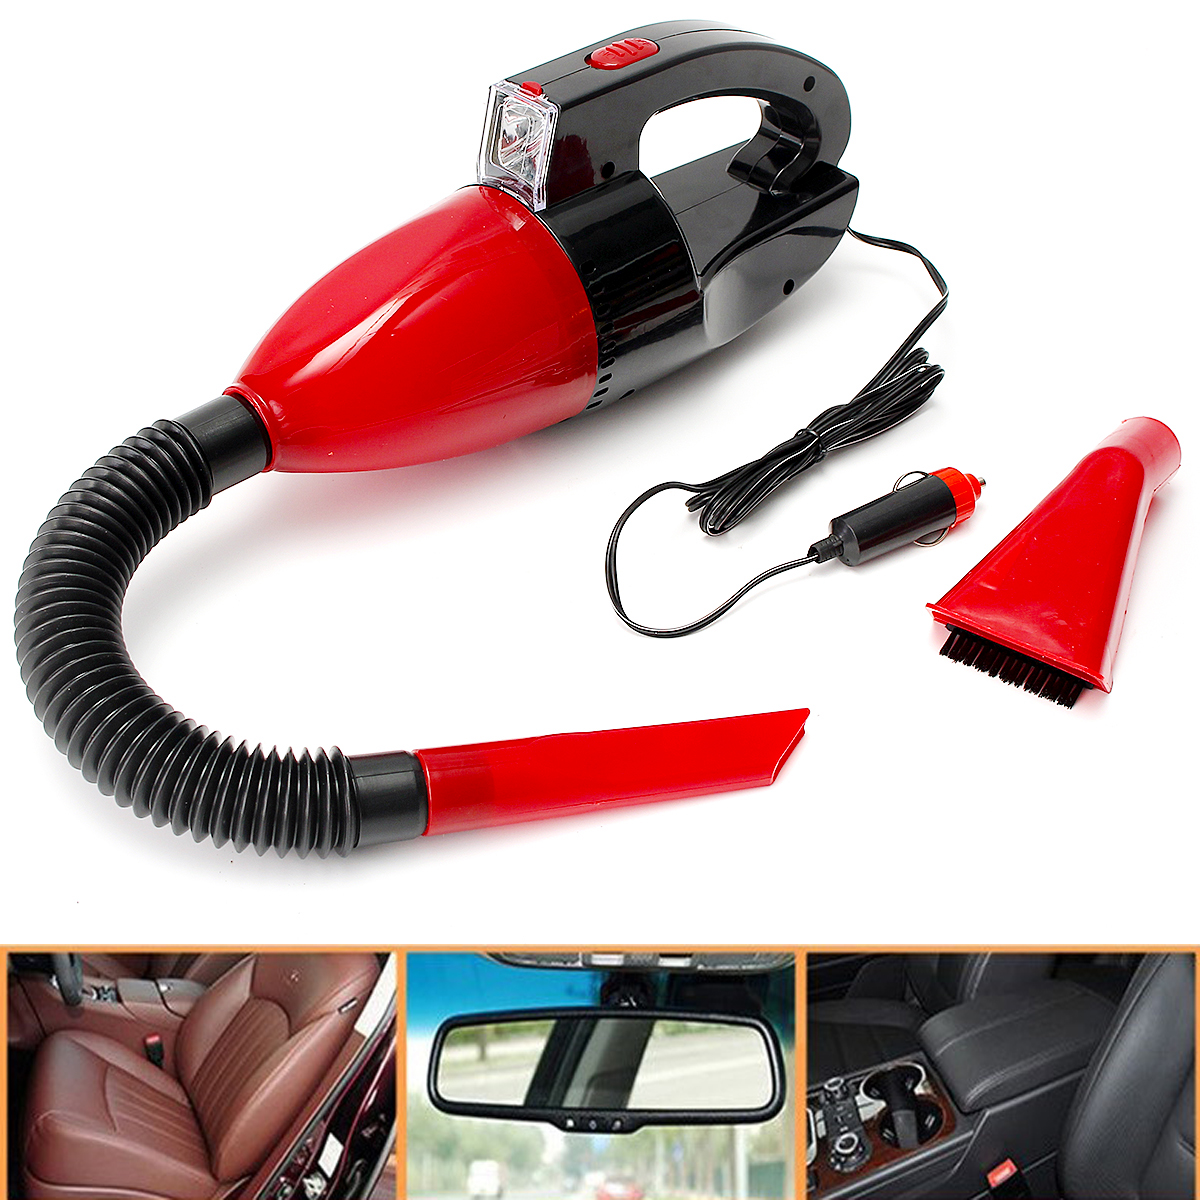 12V Vacuum Cleaner for Car Auto Dry Wet Dust Dirt Handheld Hand Mini Portable Red Vacuum Cleaner Electrical Appliance